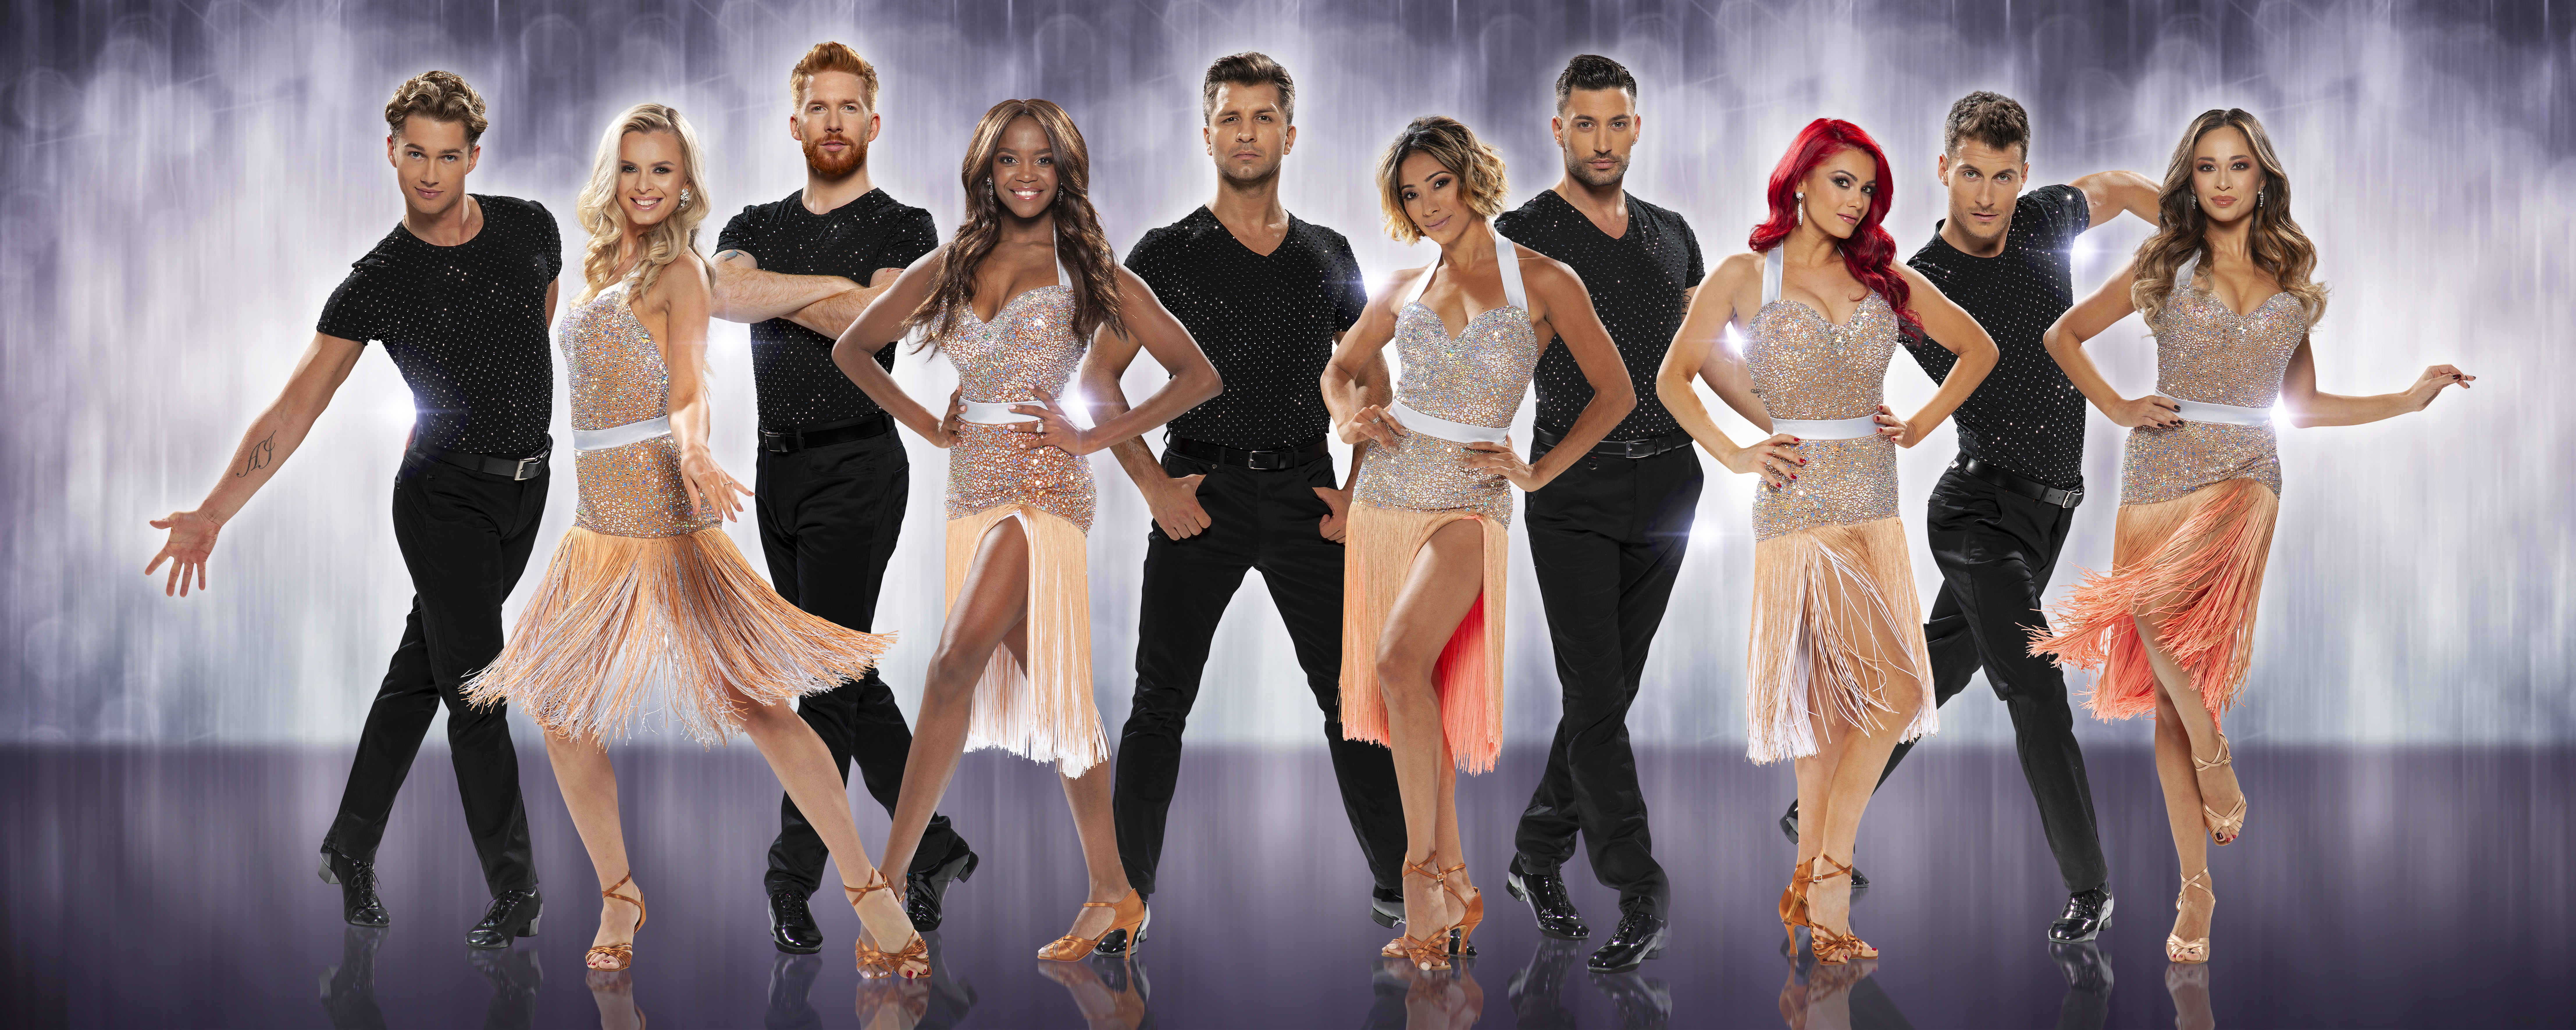 Strictly Come Dancing - The Professionals UK Tour 2019 line up  image